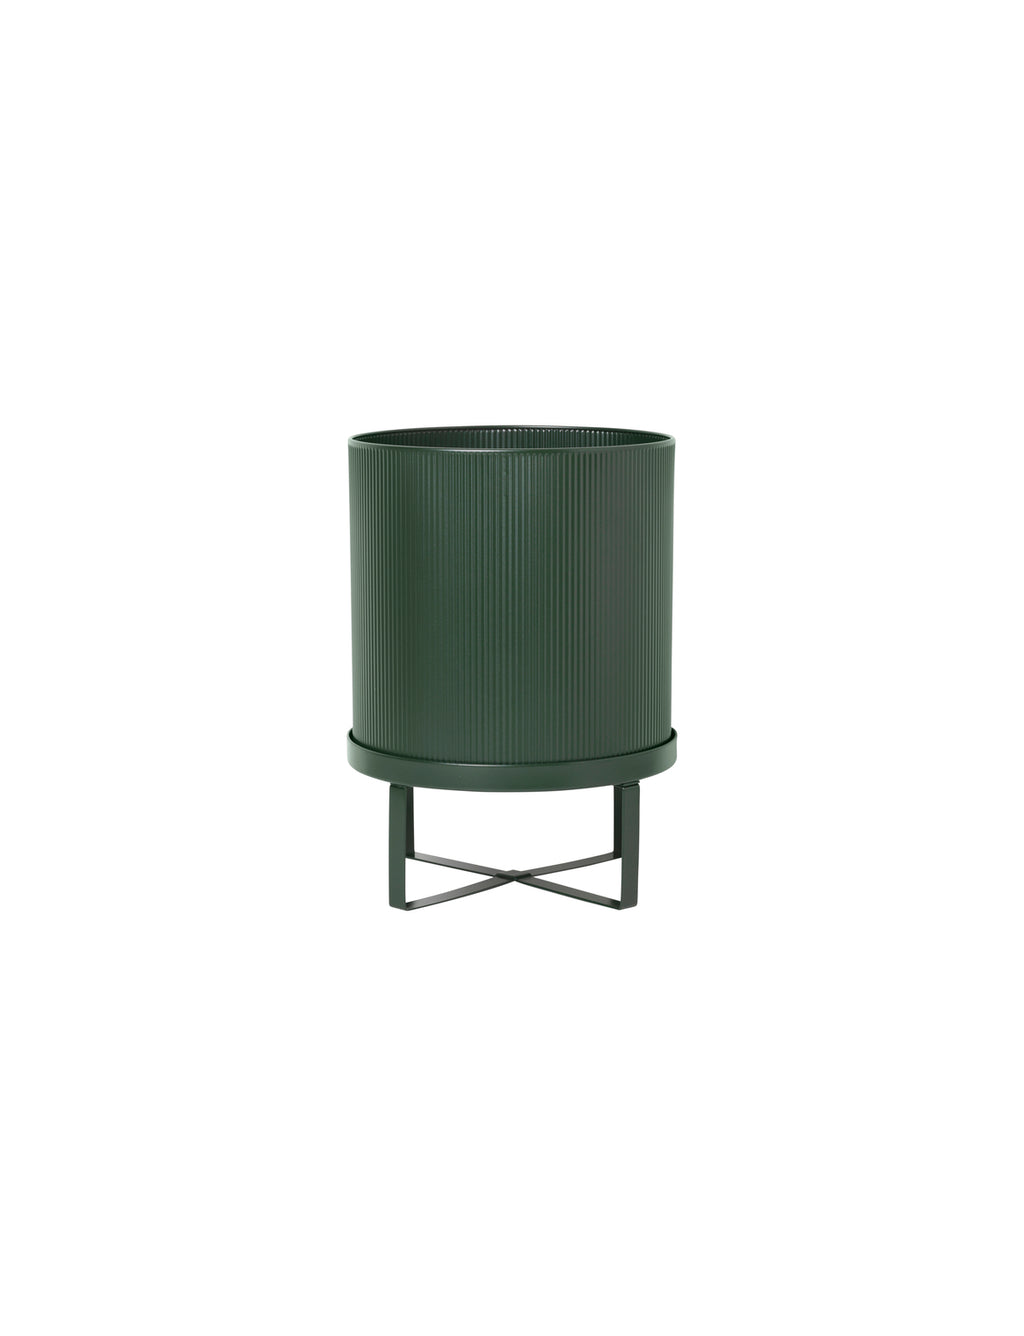 "11"" Ferm Living Bau Pot in Dark Green"